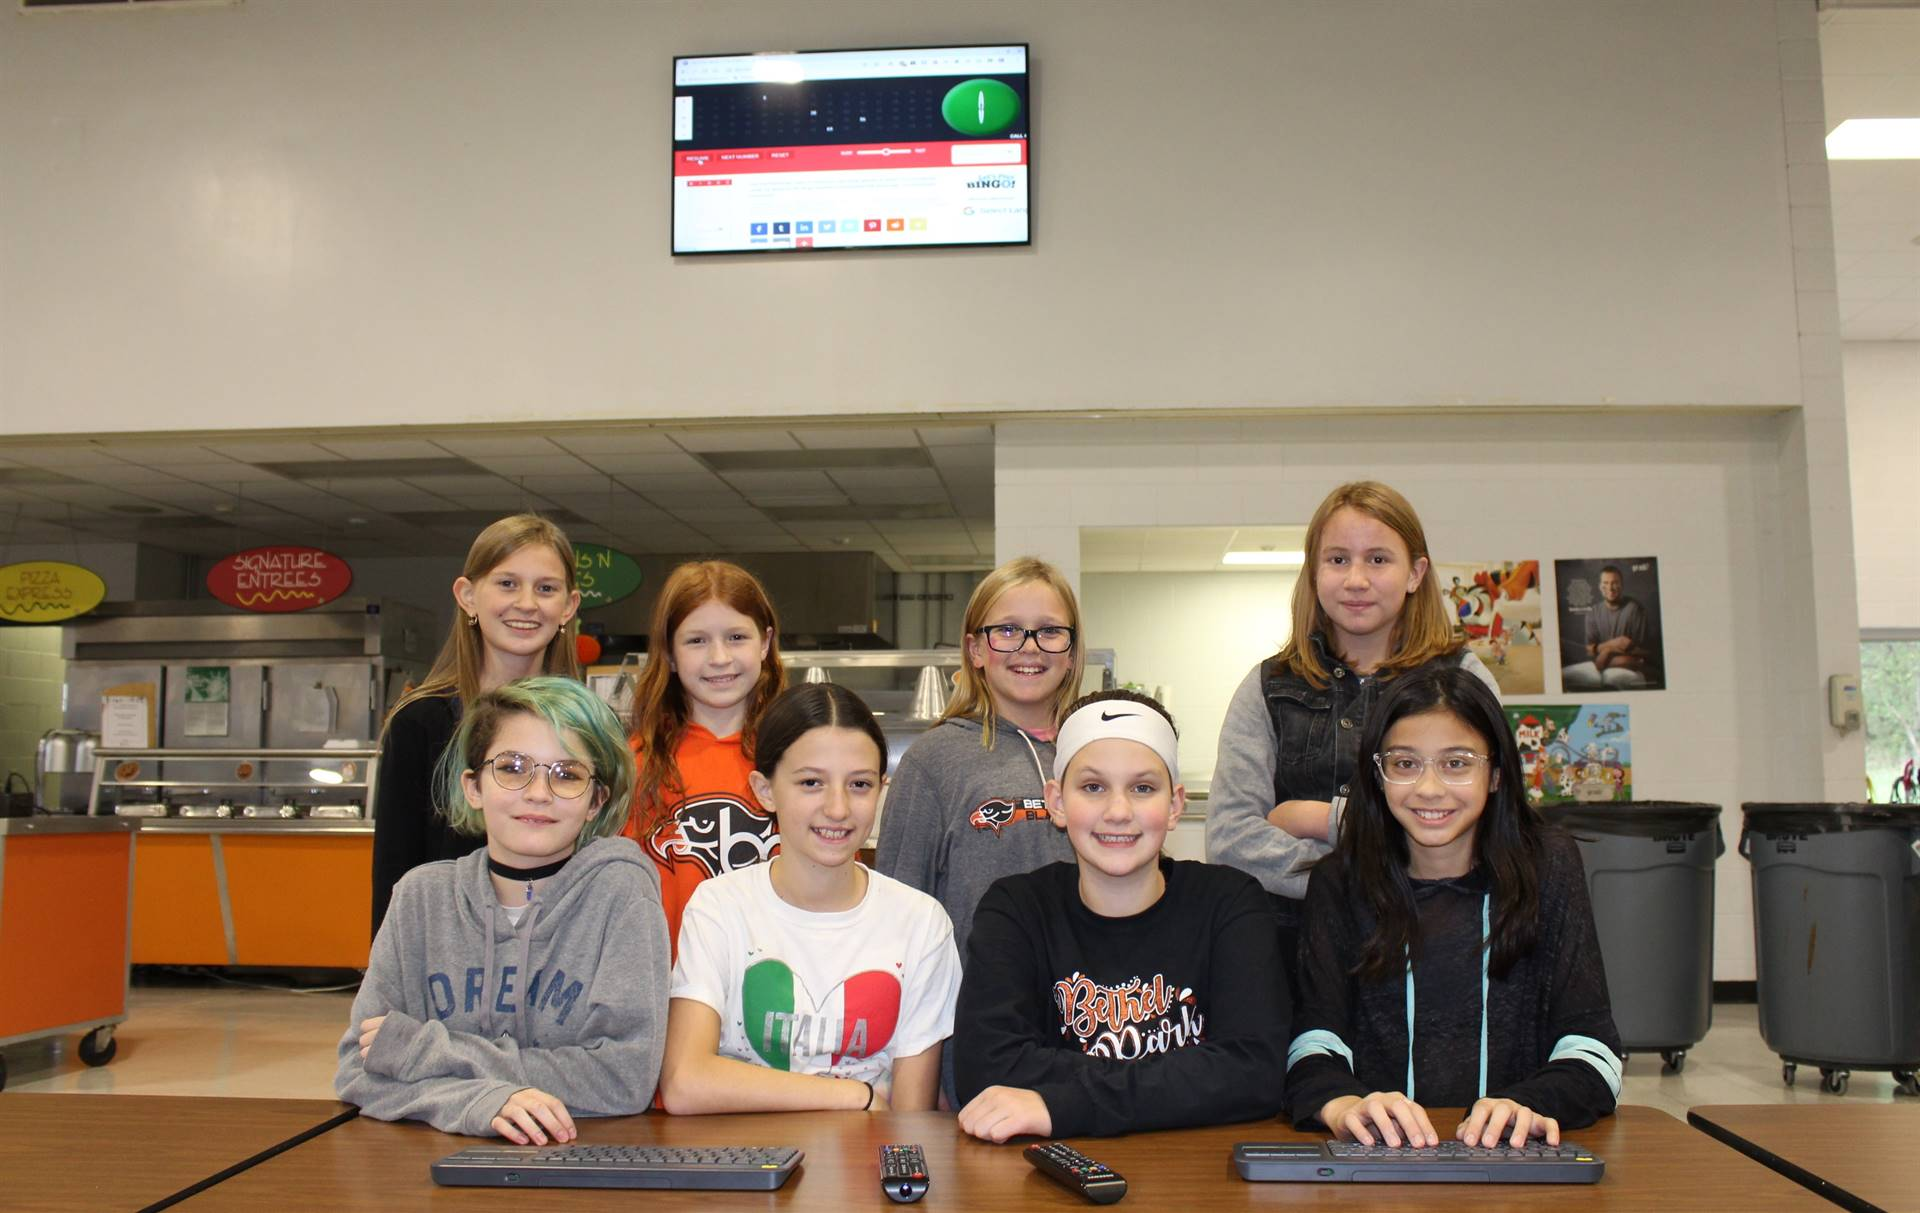 Some of the AV Students who will be helping with announcements on the new TVs